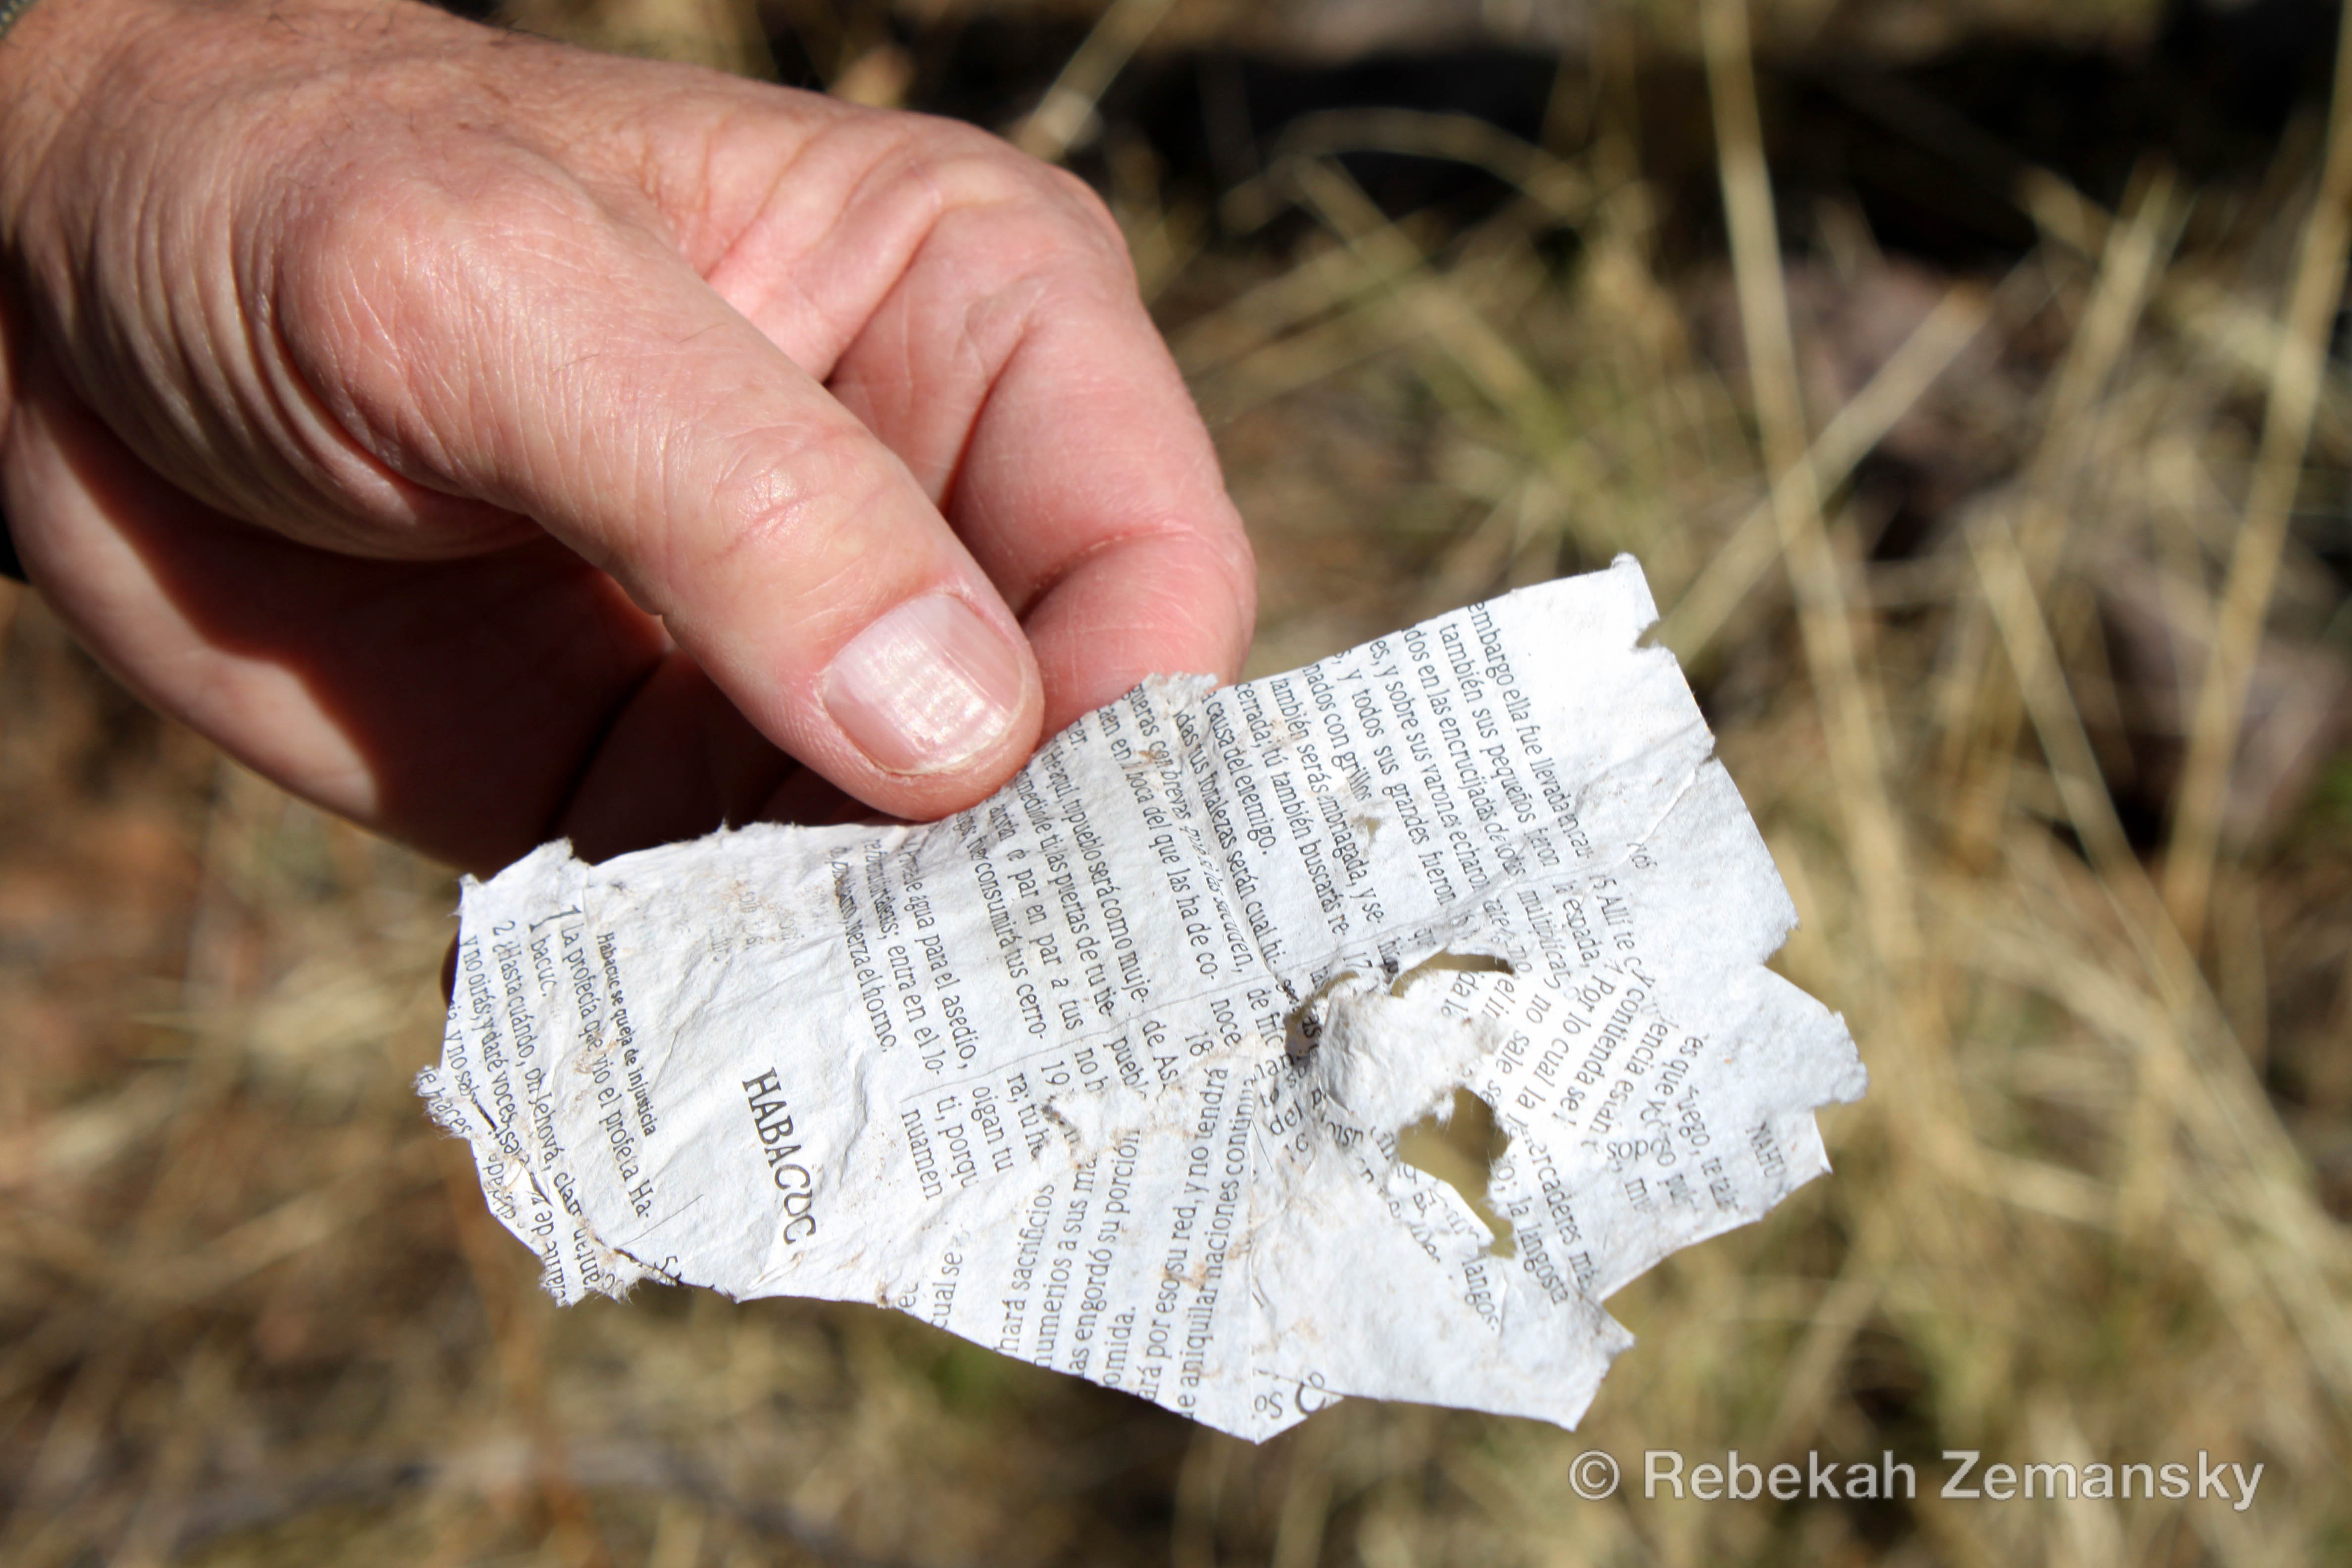 fragment of a Spanish Bible found in Tumacácori, Arizona on 13 February 2010